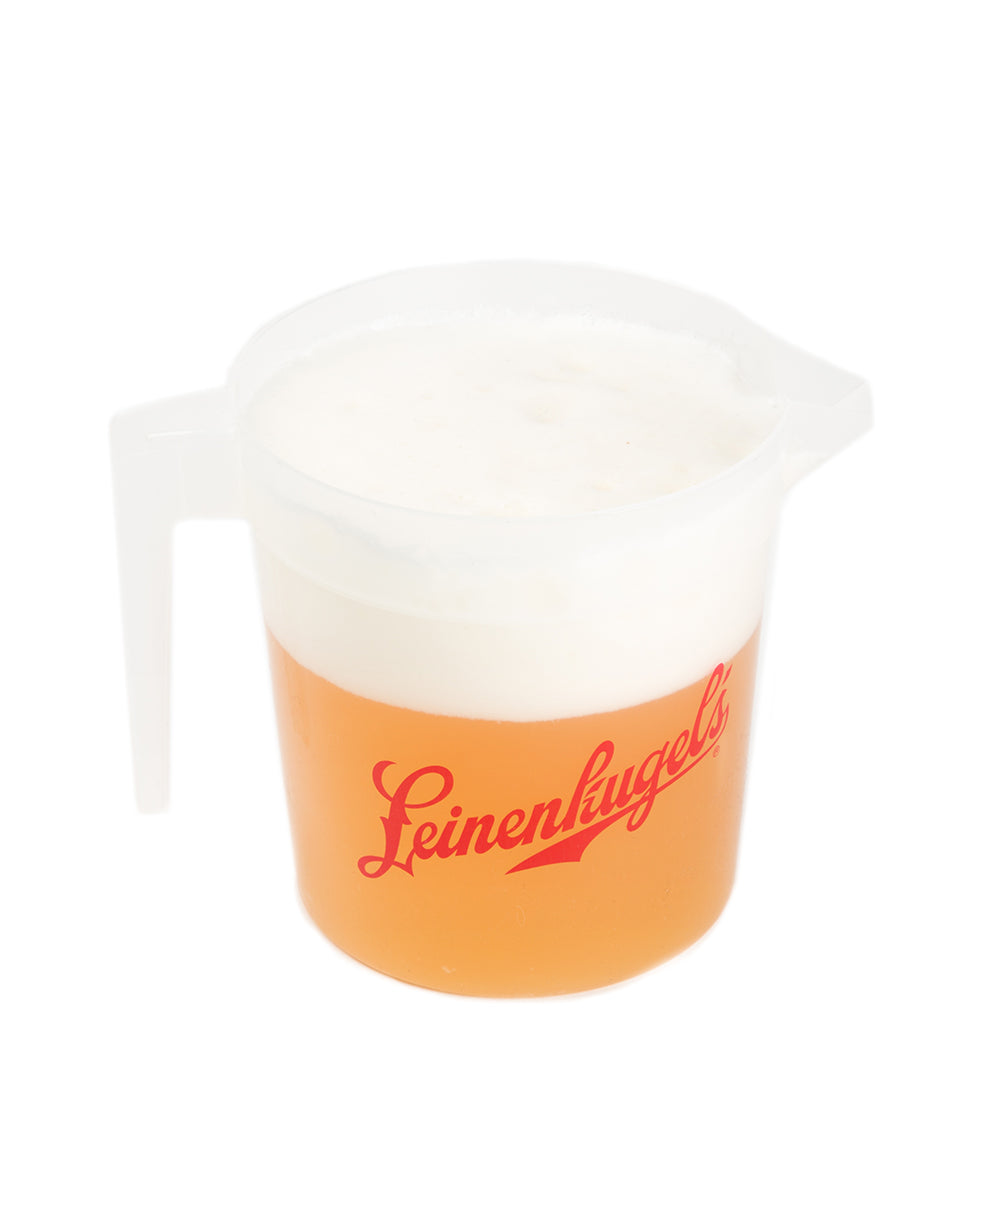 48 OZ STACKING PARTY PITCHER